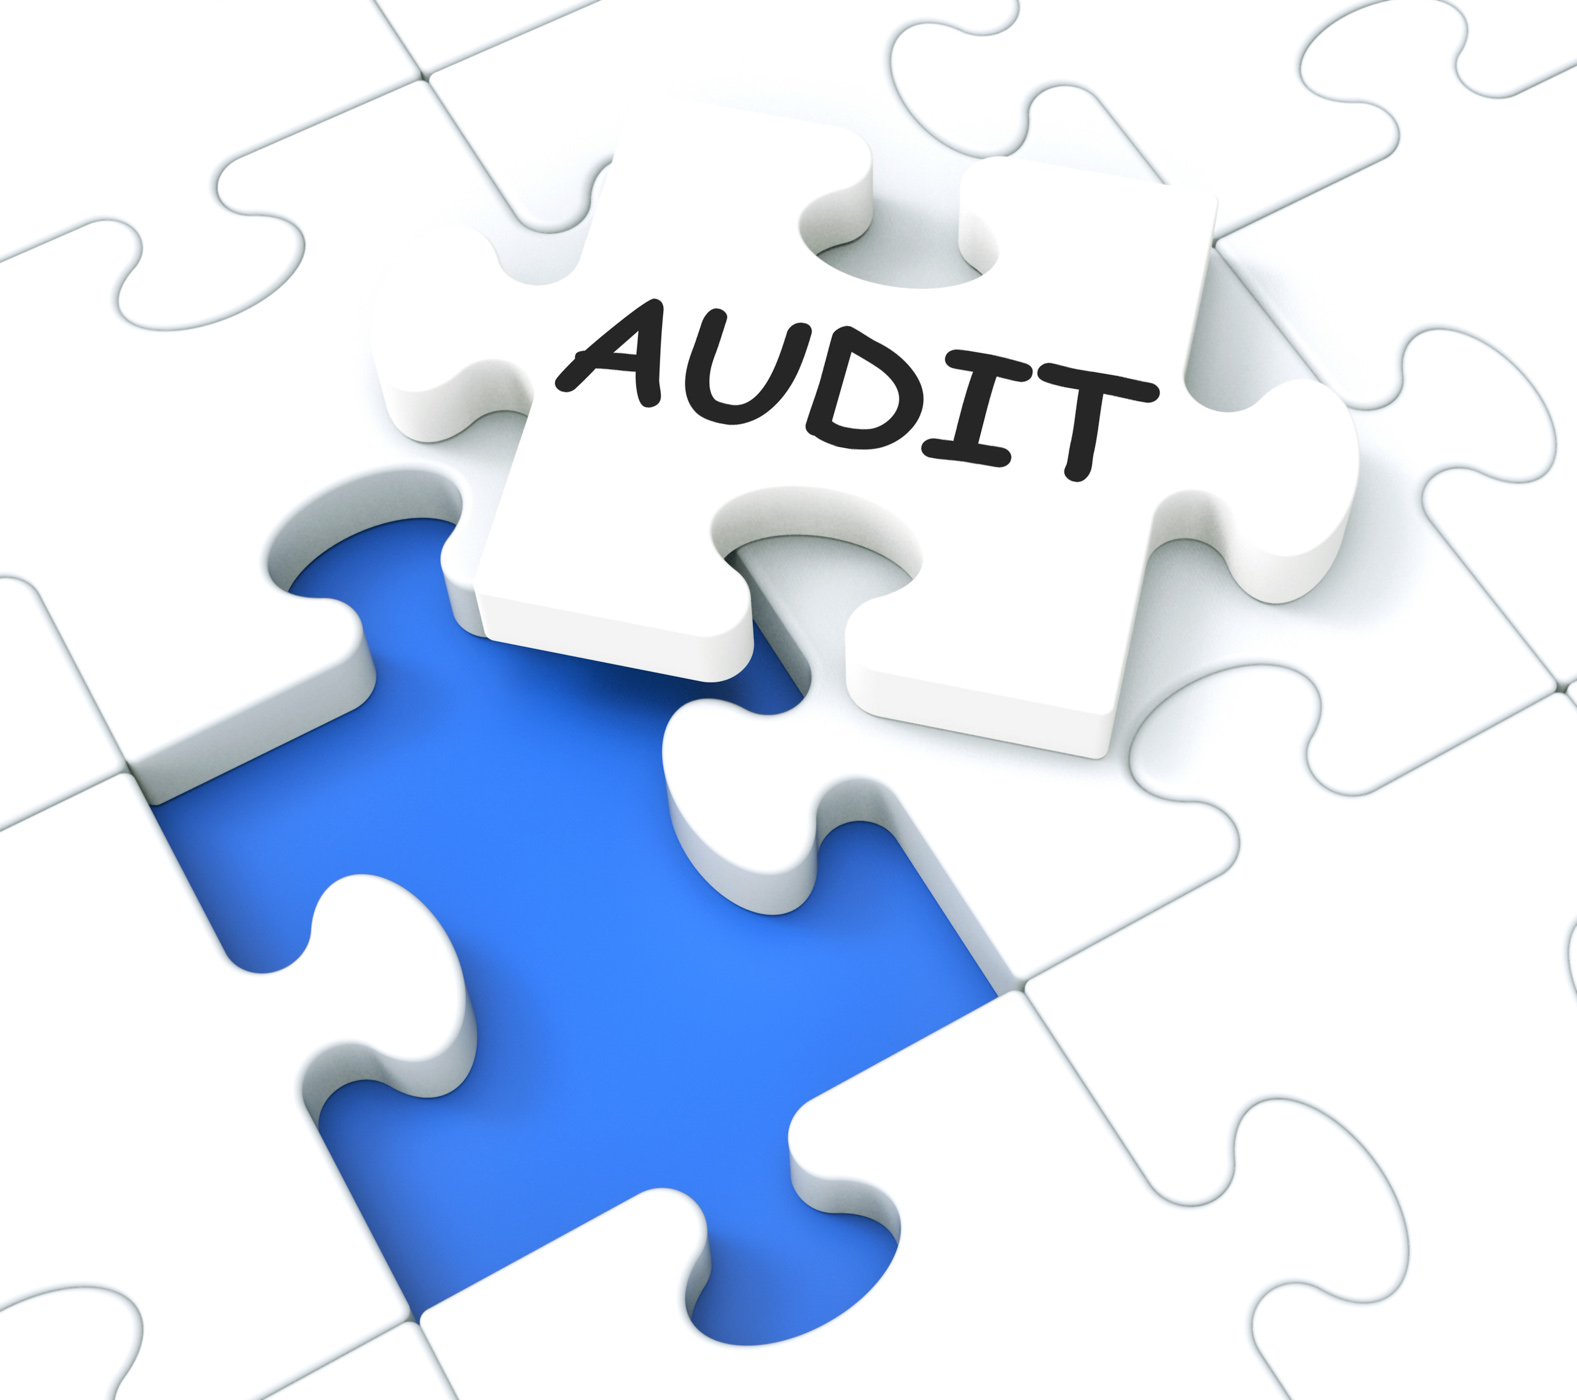 The perception of audit